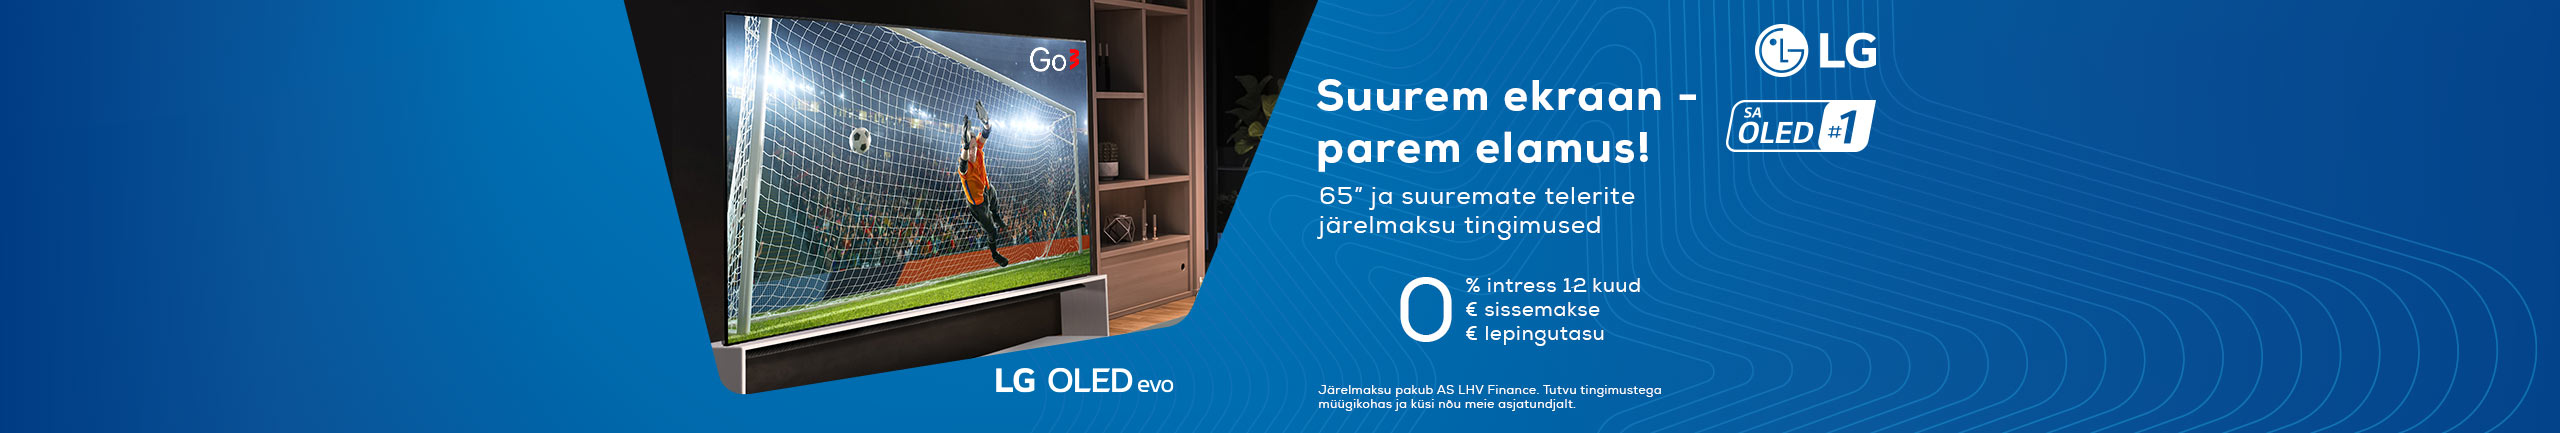 0% hire-purchase interest for 12 months for large LG TV-s